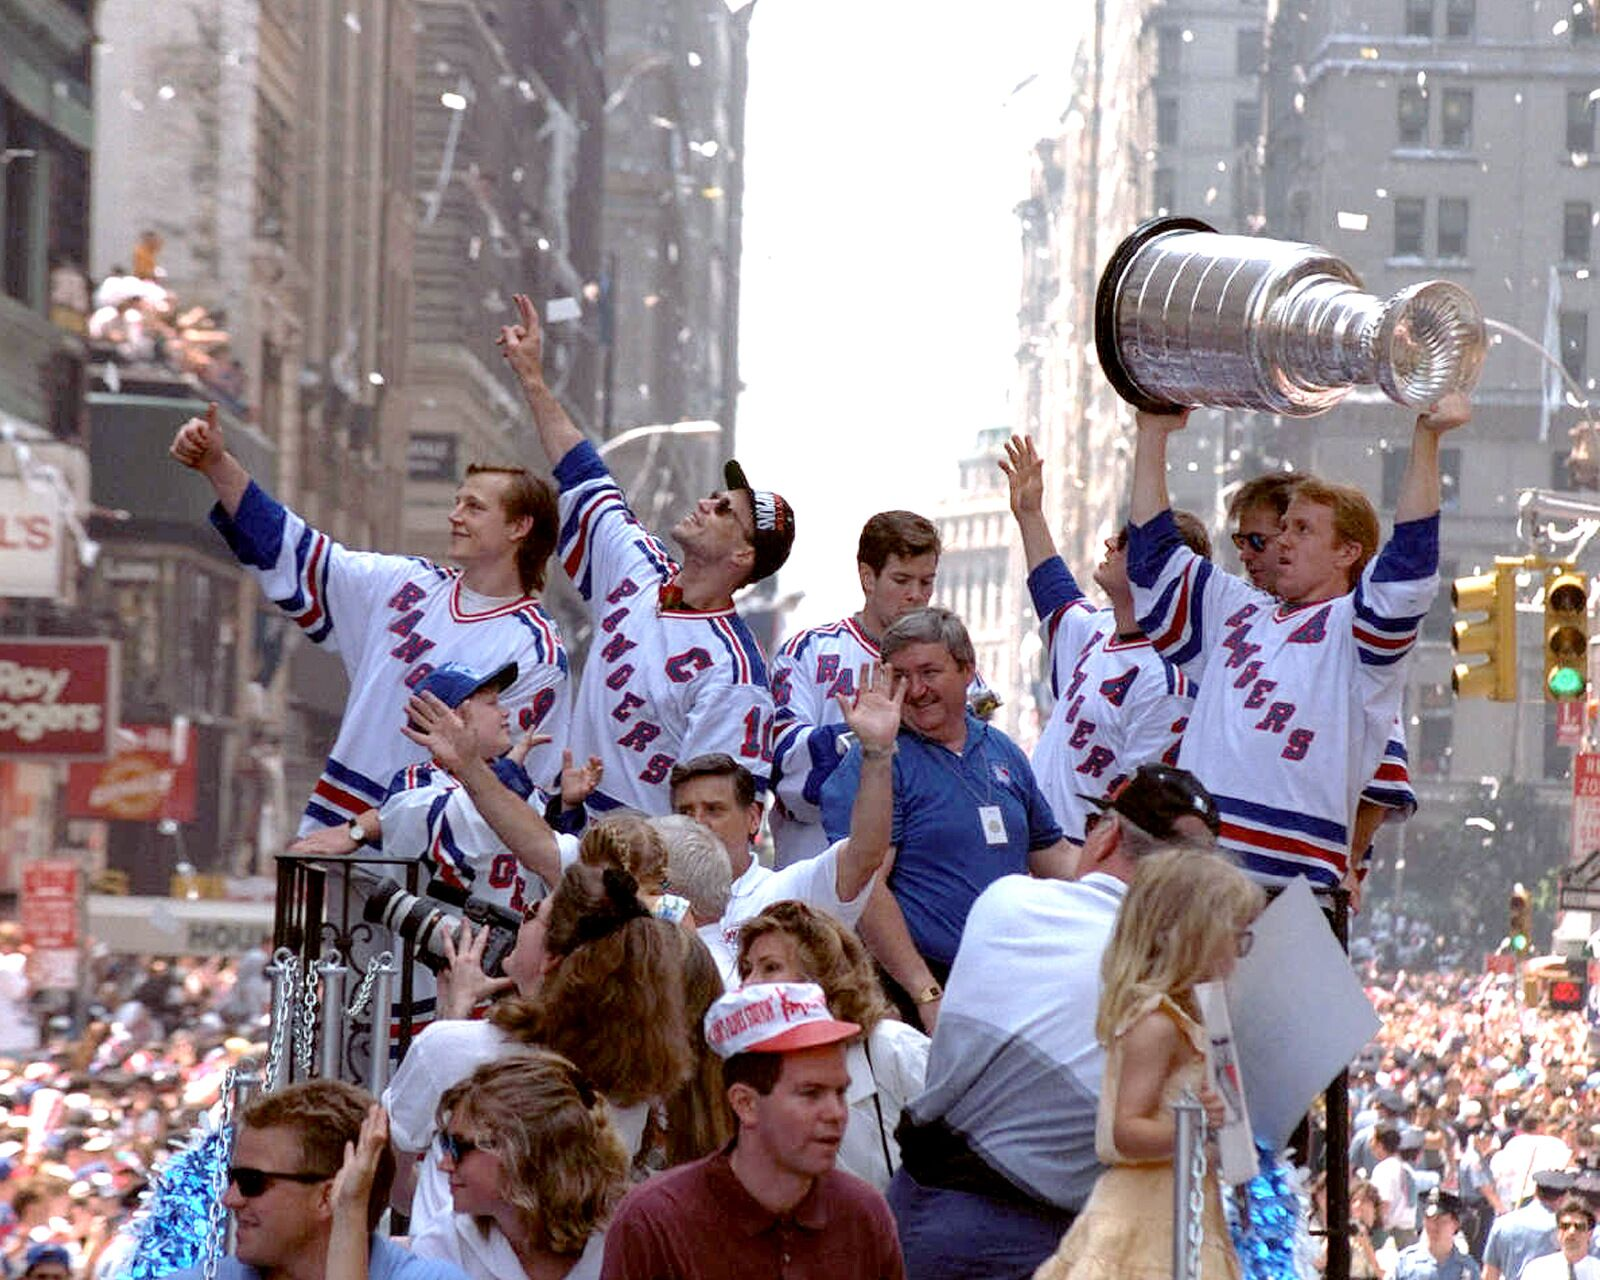 New York Rangers: The post 1994 perspective from the future